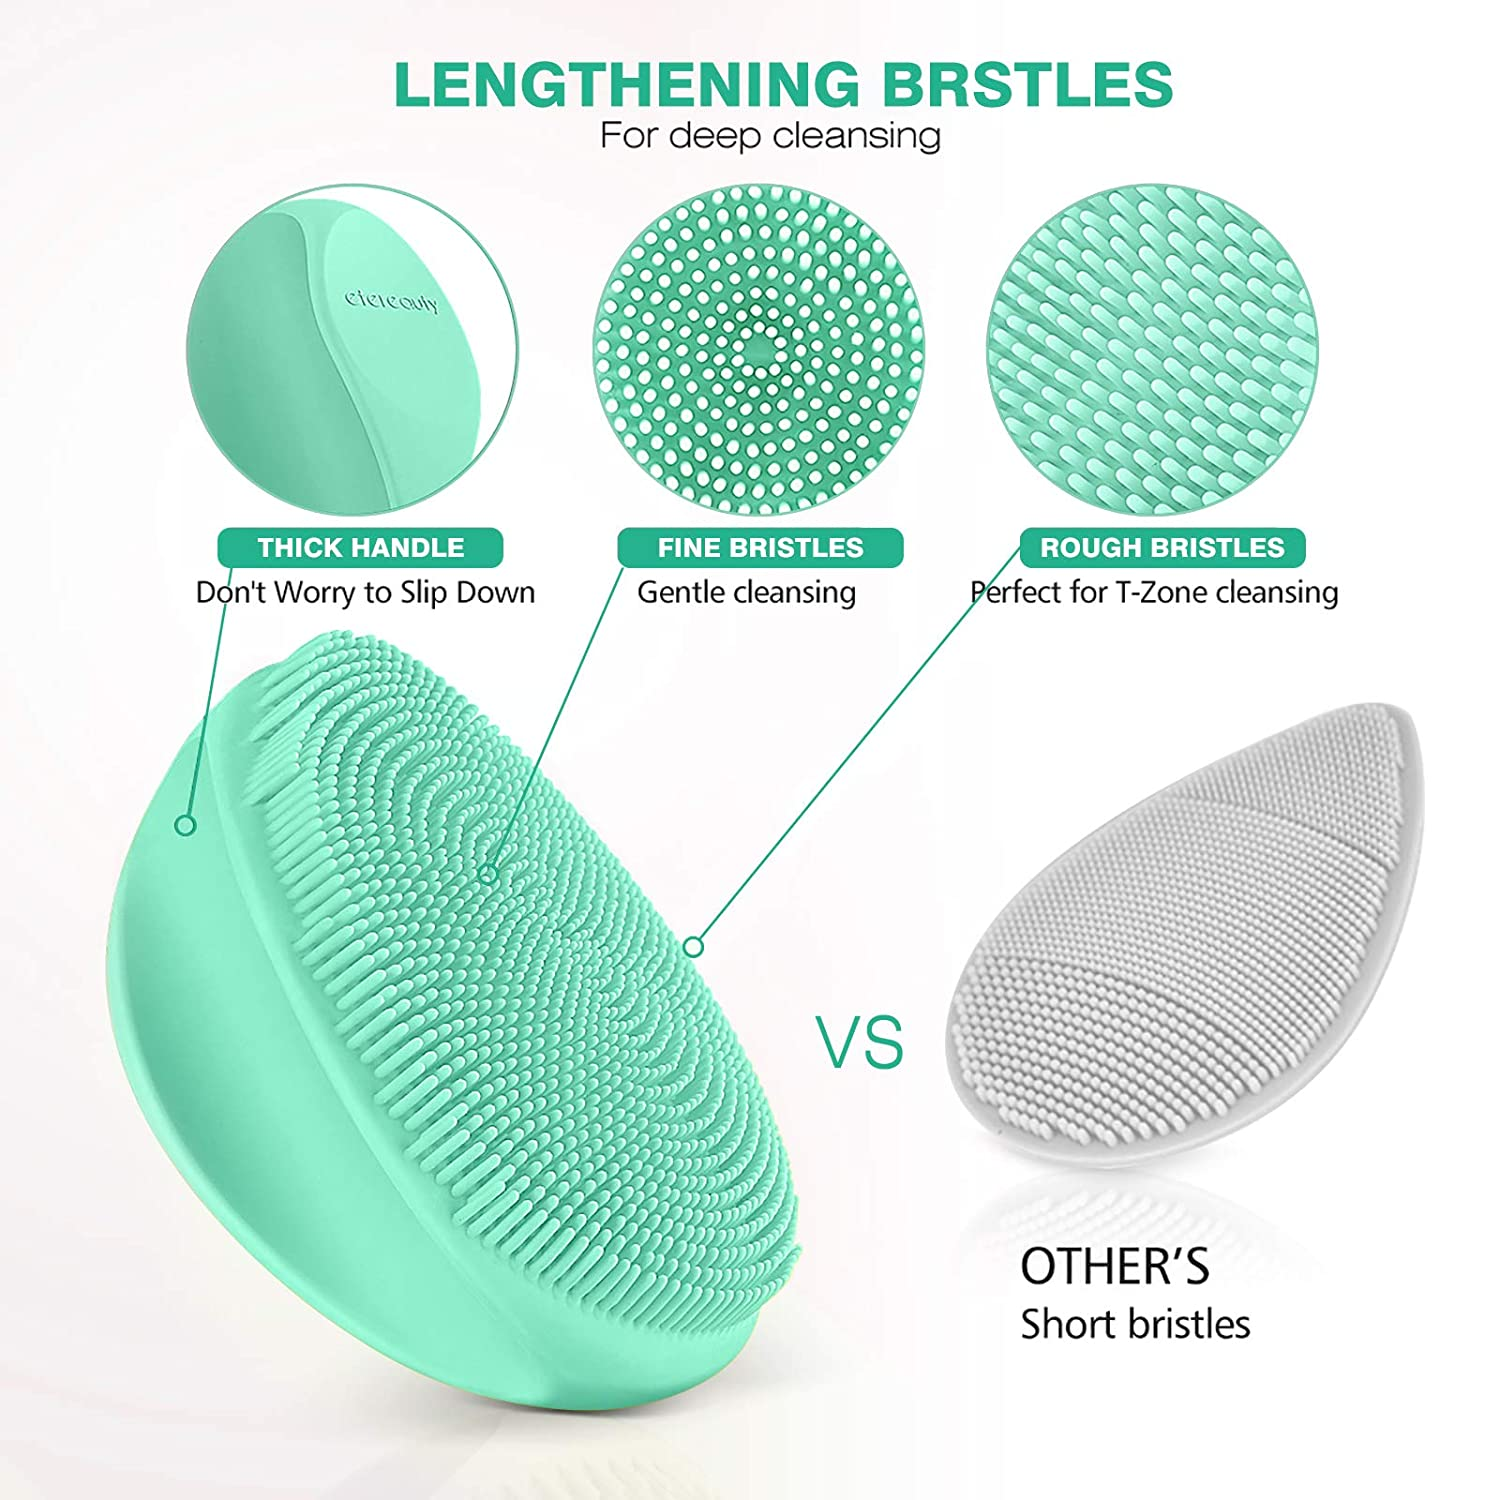 Silicone Face Scrubber Exfoliator Brush, Manual Facial Cleansing Brush Pad Soft Face Wash Brush 2 Pack (Gray and Green)